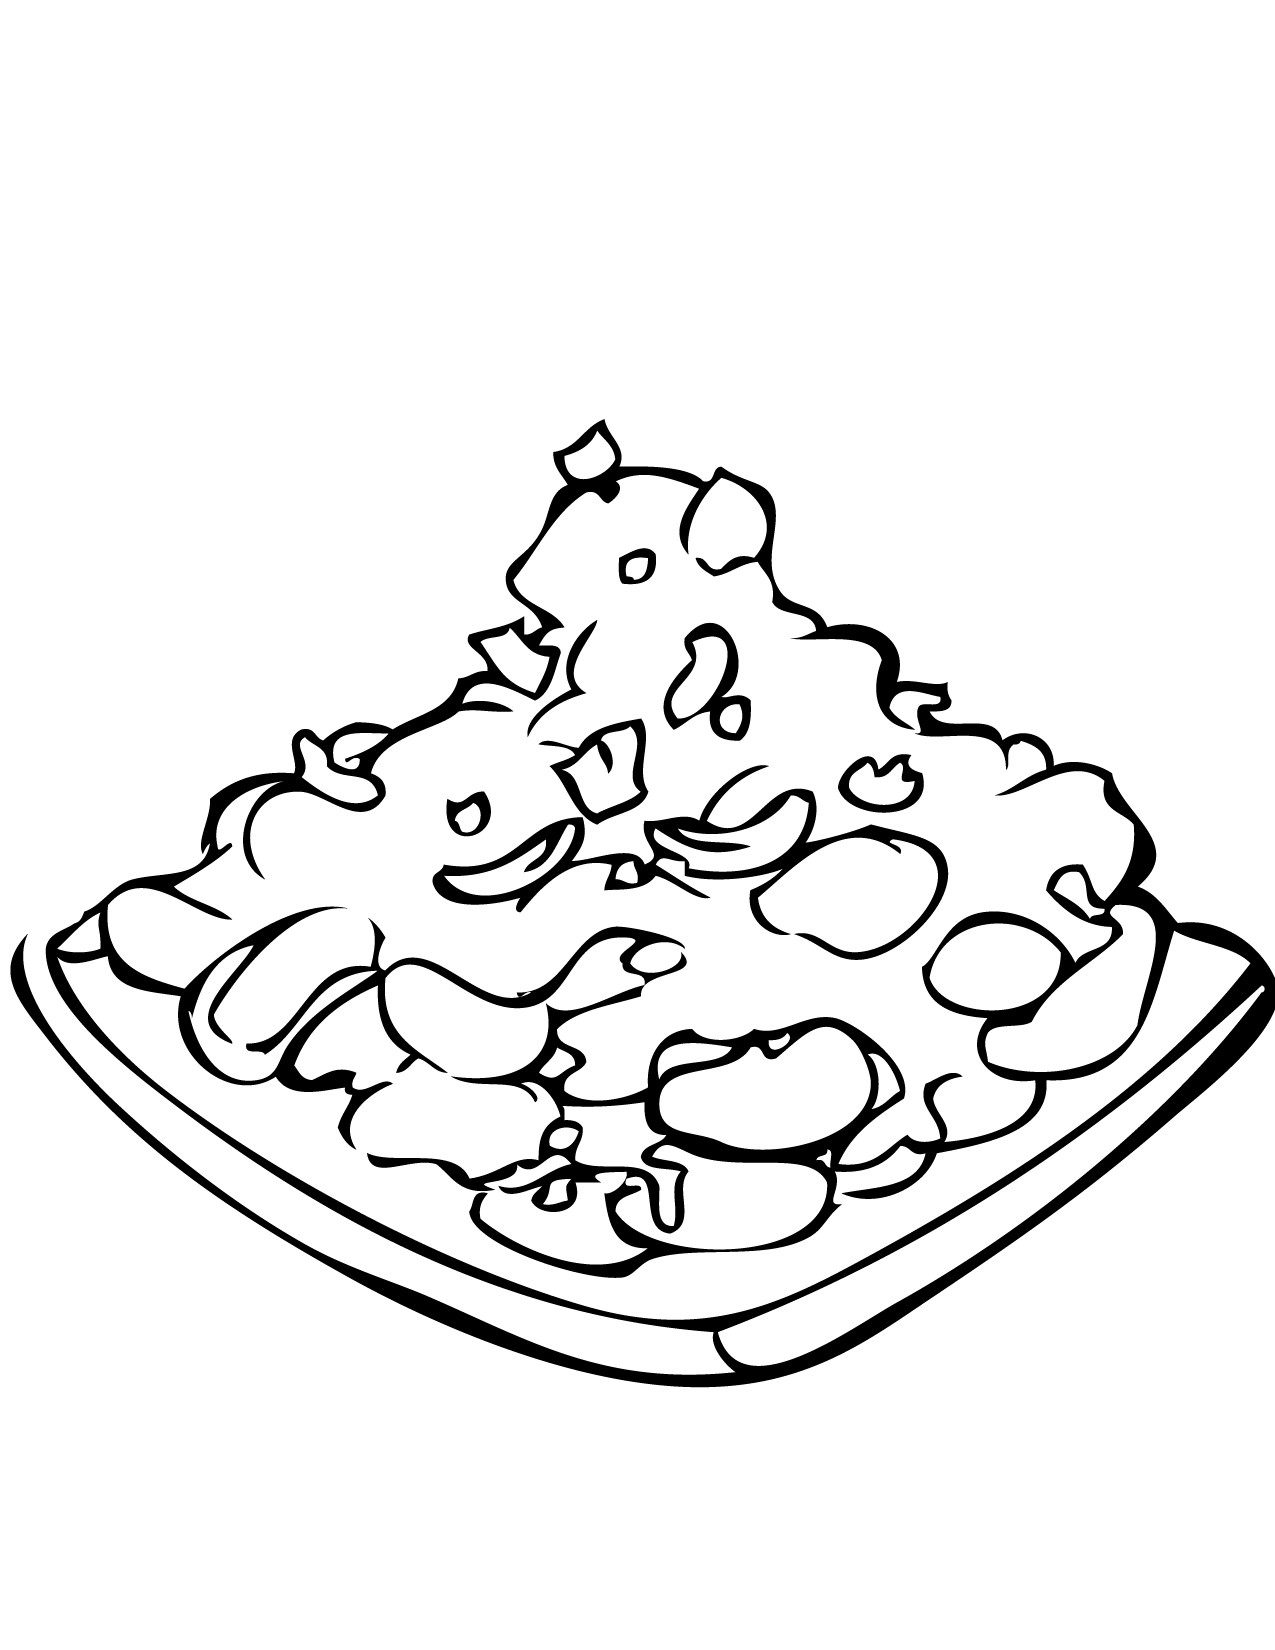 1275x1650 Kung Pao Chicken Coloring Page